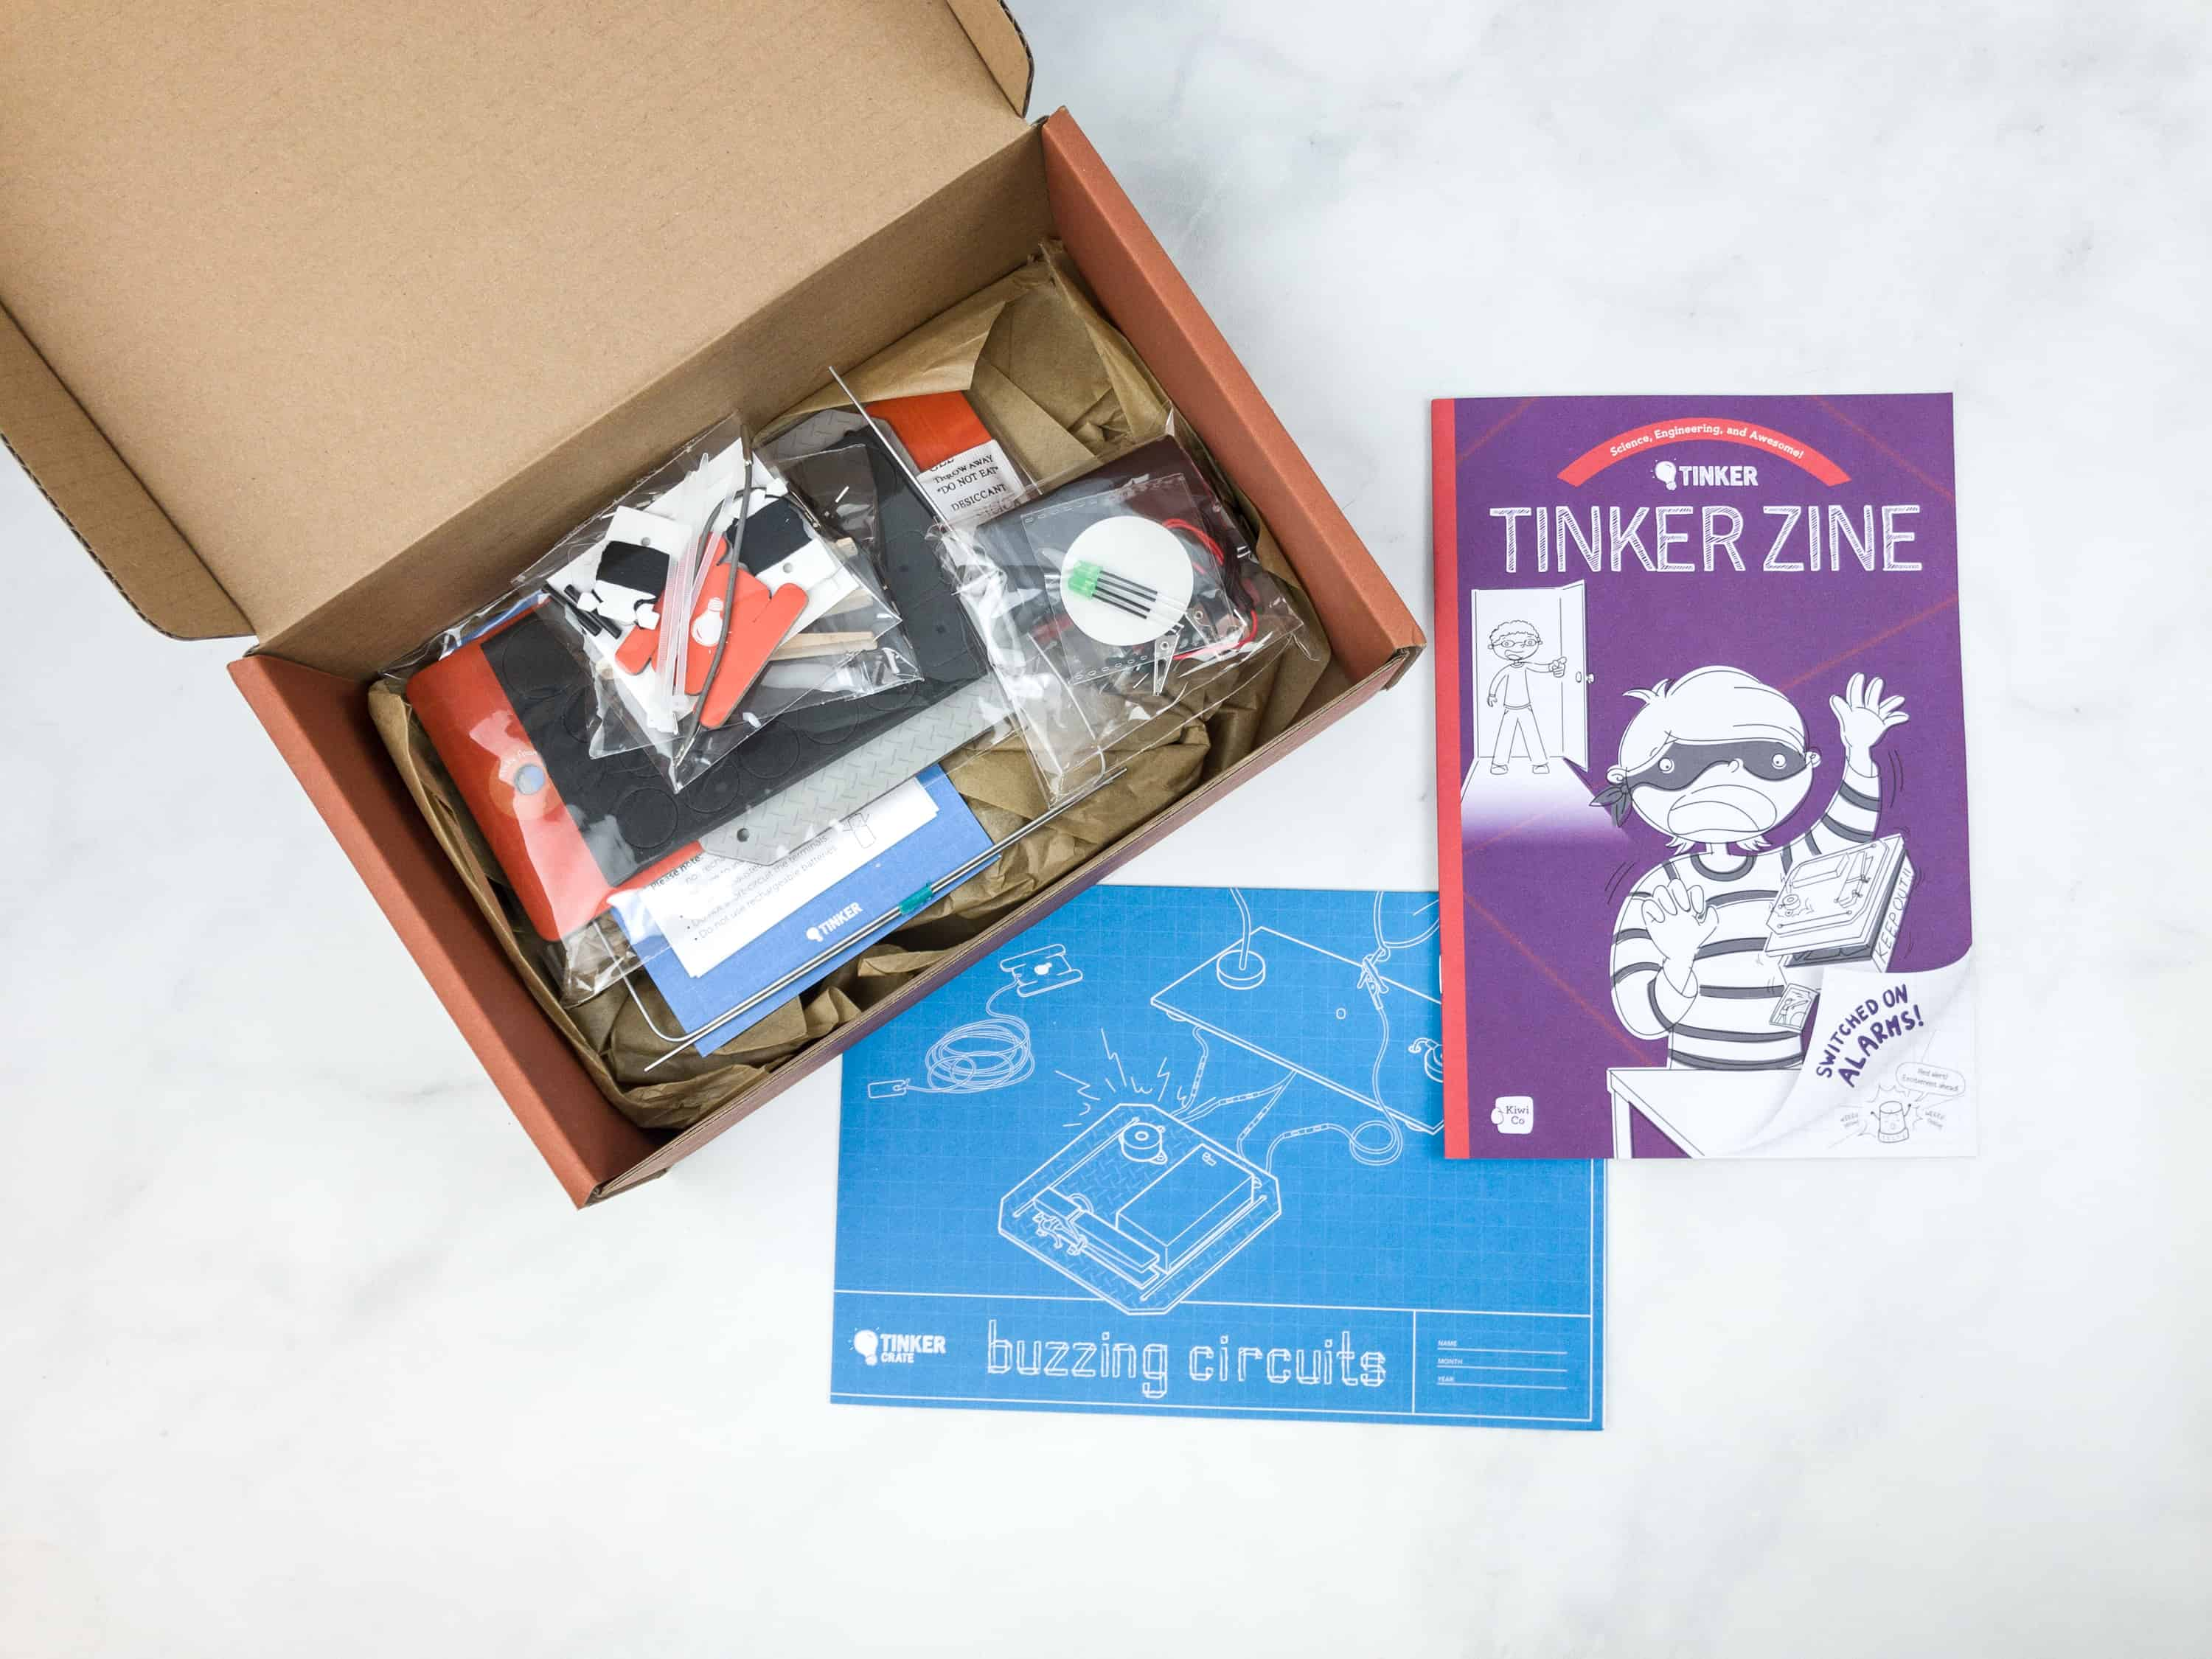 Tinker Crate Review Coupon Buzzing Circuits Hello Subscription Structured Wiring Books Kids Practice Their Problem Solving Skills And Learn How To Engage In Both Open Ended Exploration Investigation